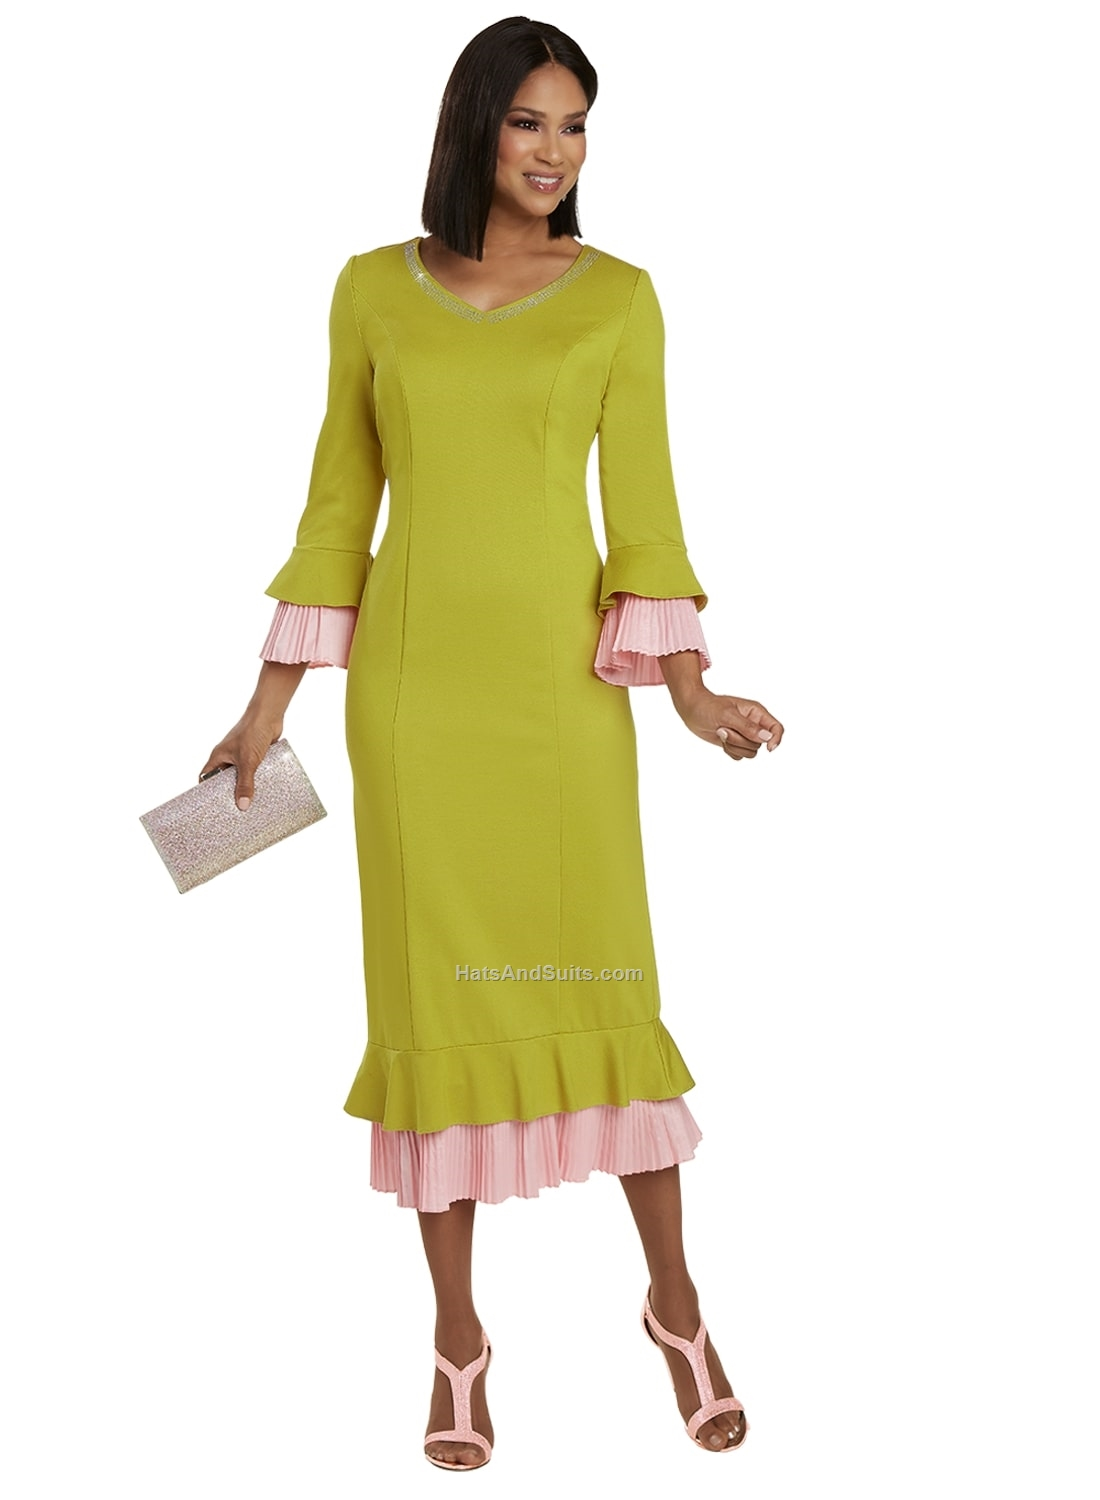 11939 Donna Vinci 1 Pc. Dress. SP21